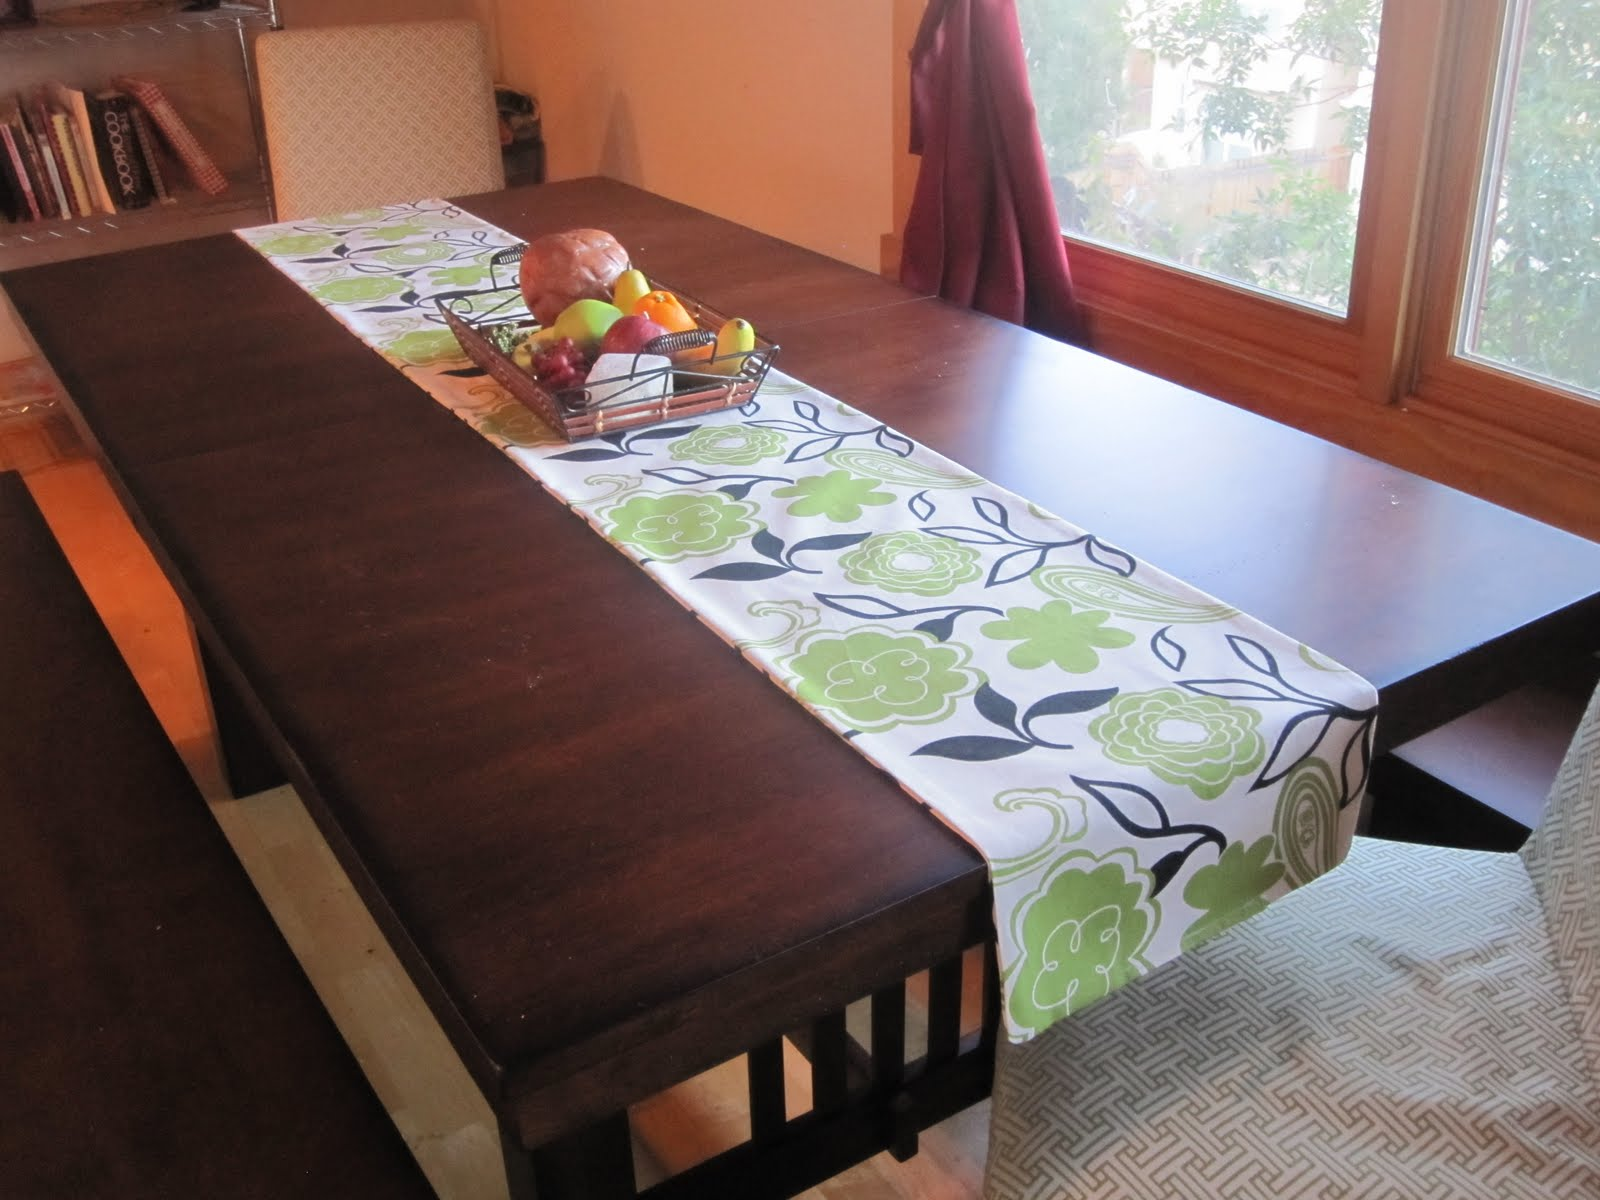 Neighbor Julia How To Make A Table Runner